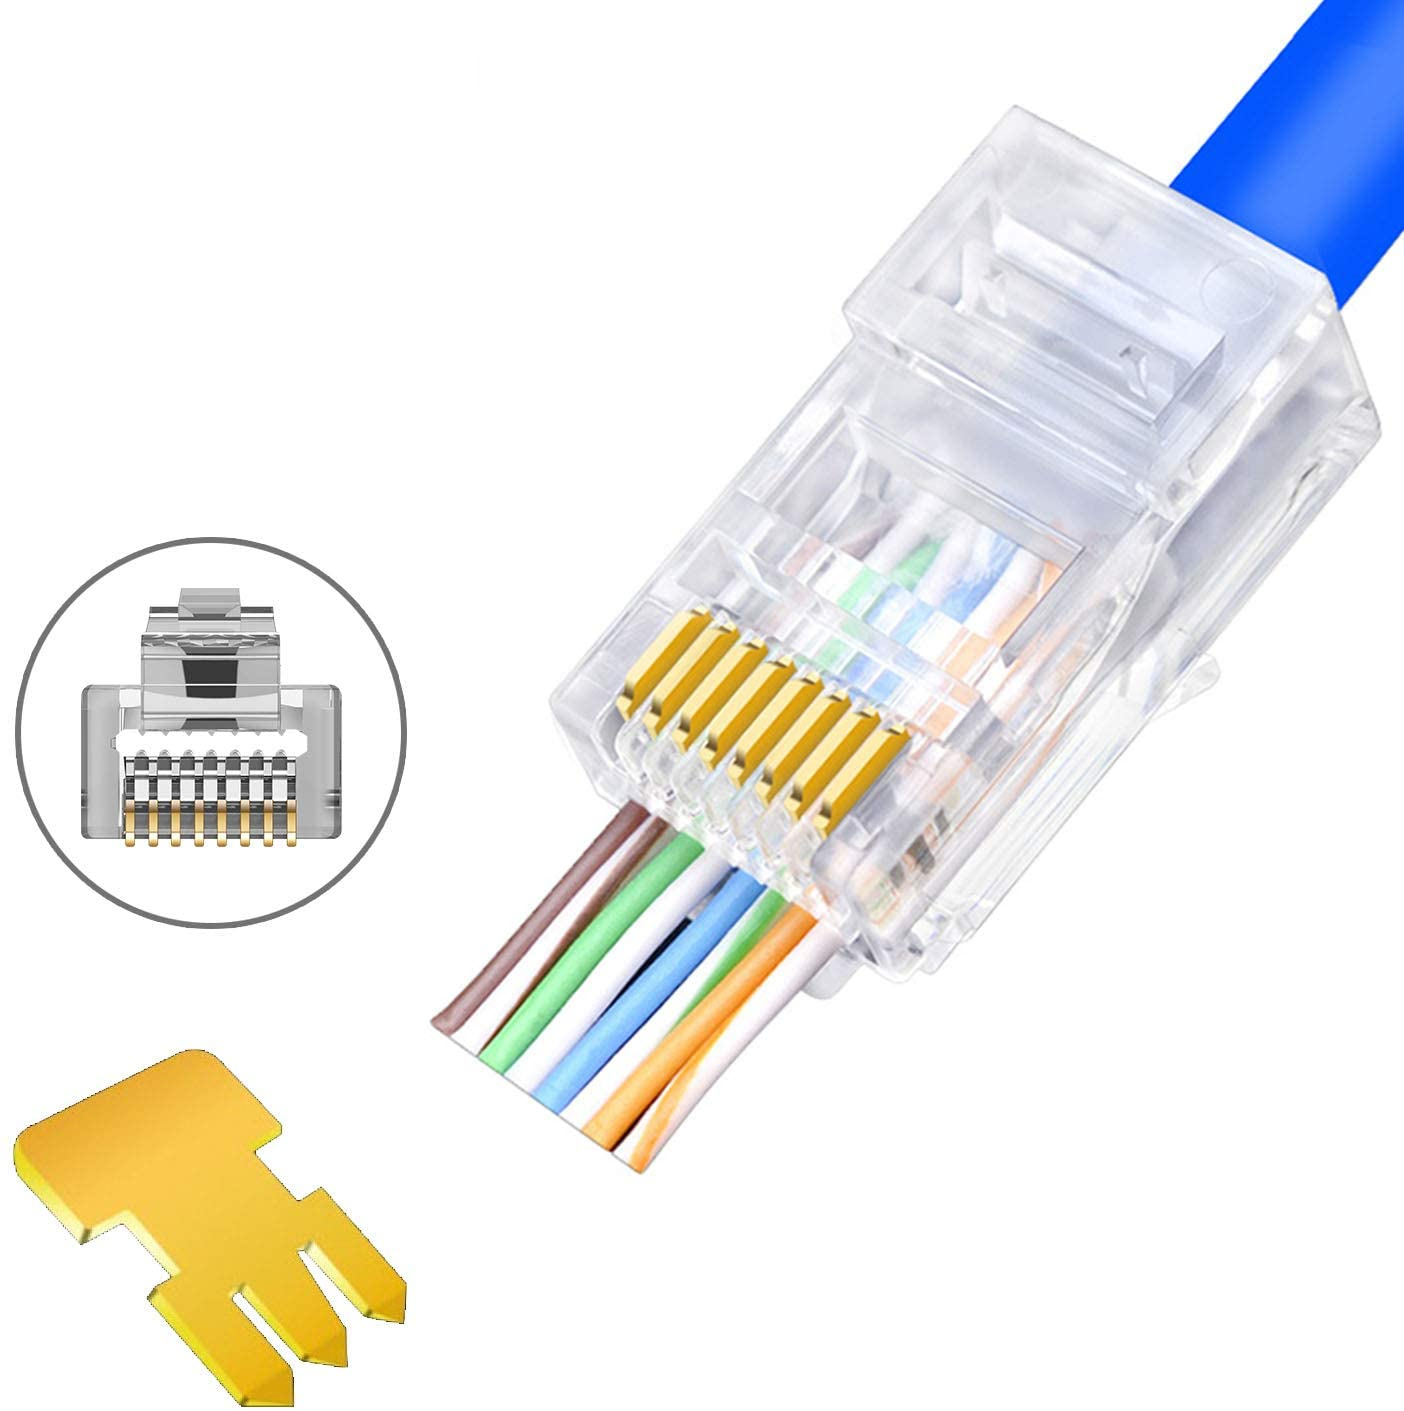 40AWG RJ40 Cat40 Cat40e Connectors   Pass Through Connector Gold Plated 40  Prong 40P40C Modular Plugs  400Pack